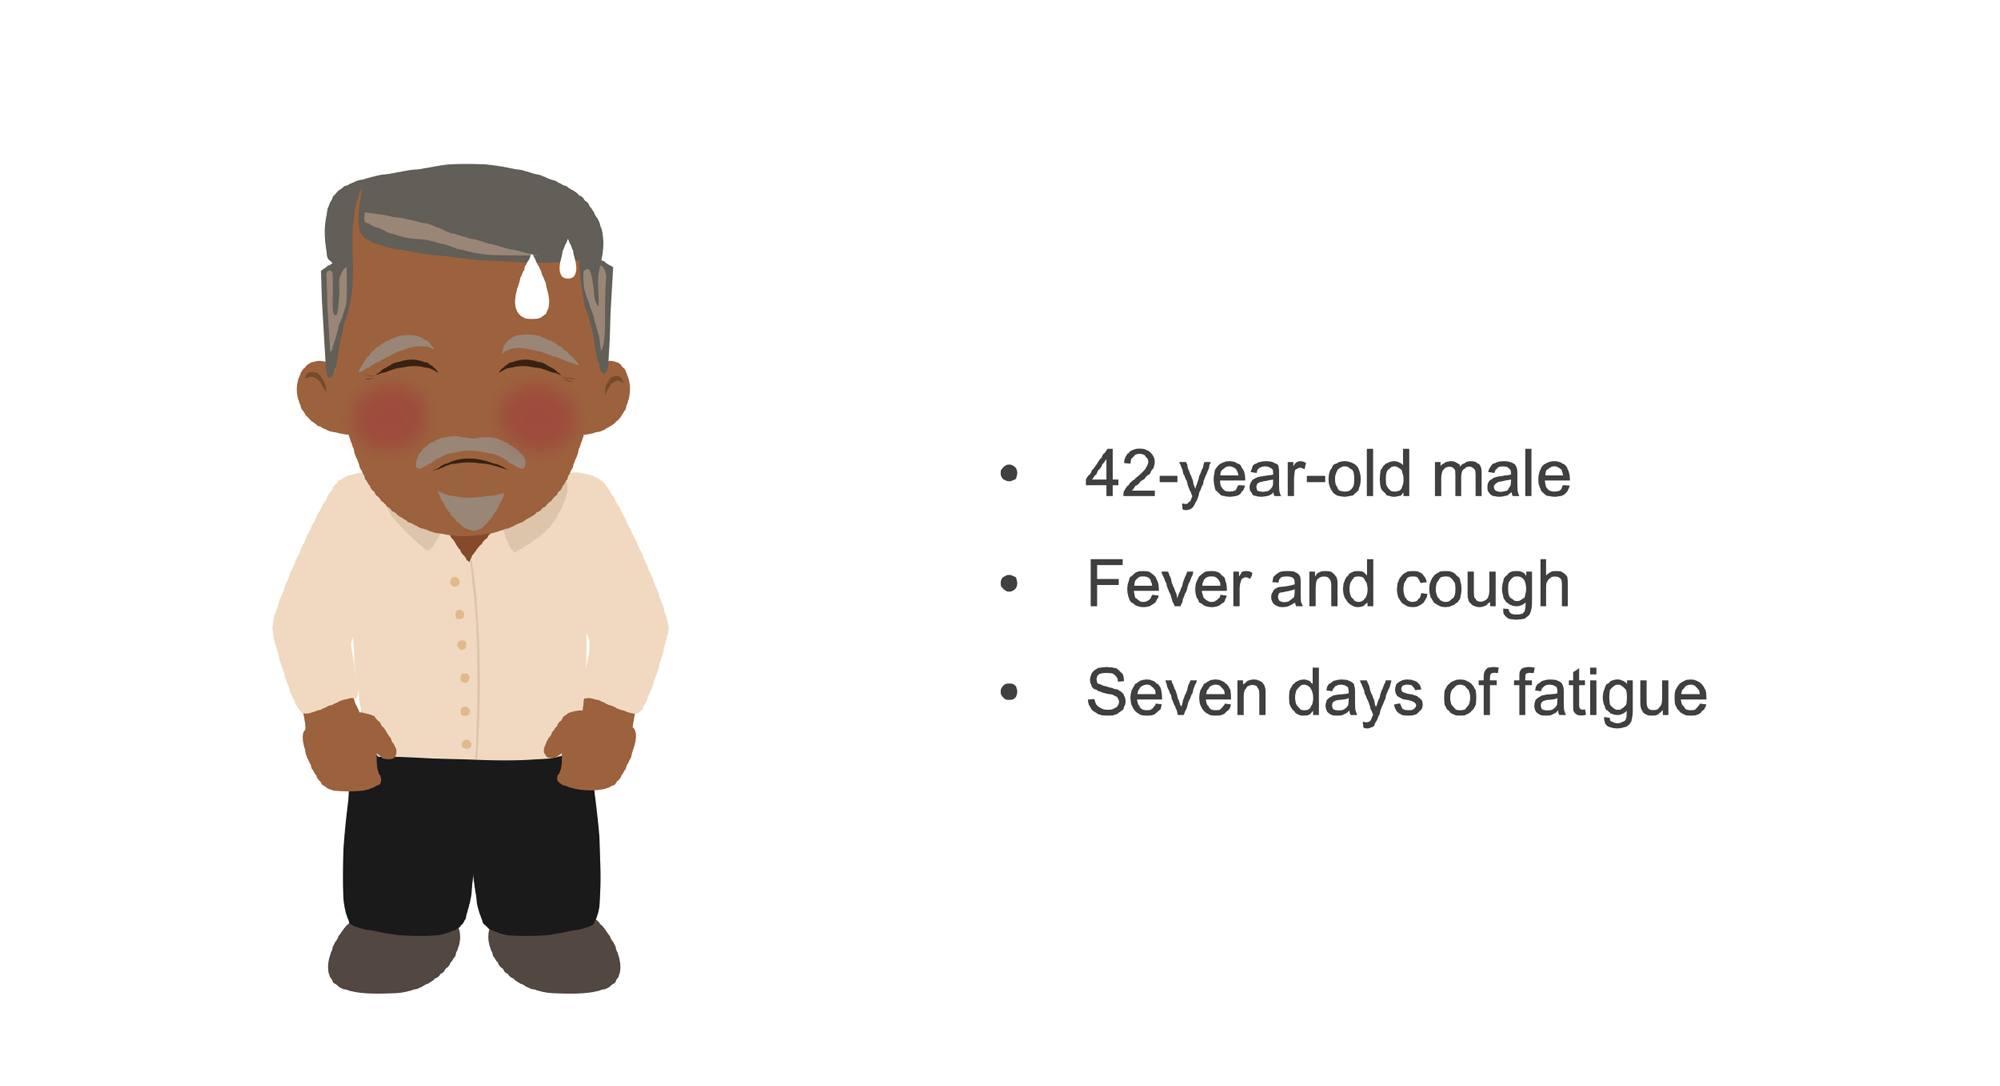 Man with fever. Illustration.